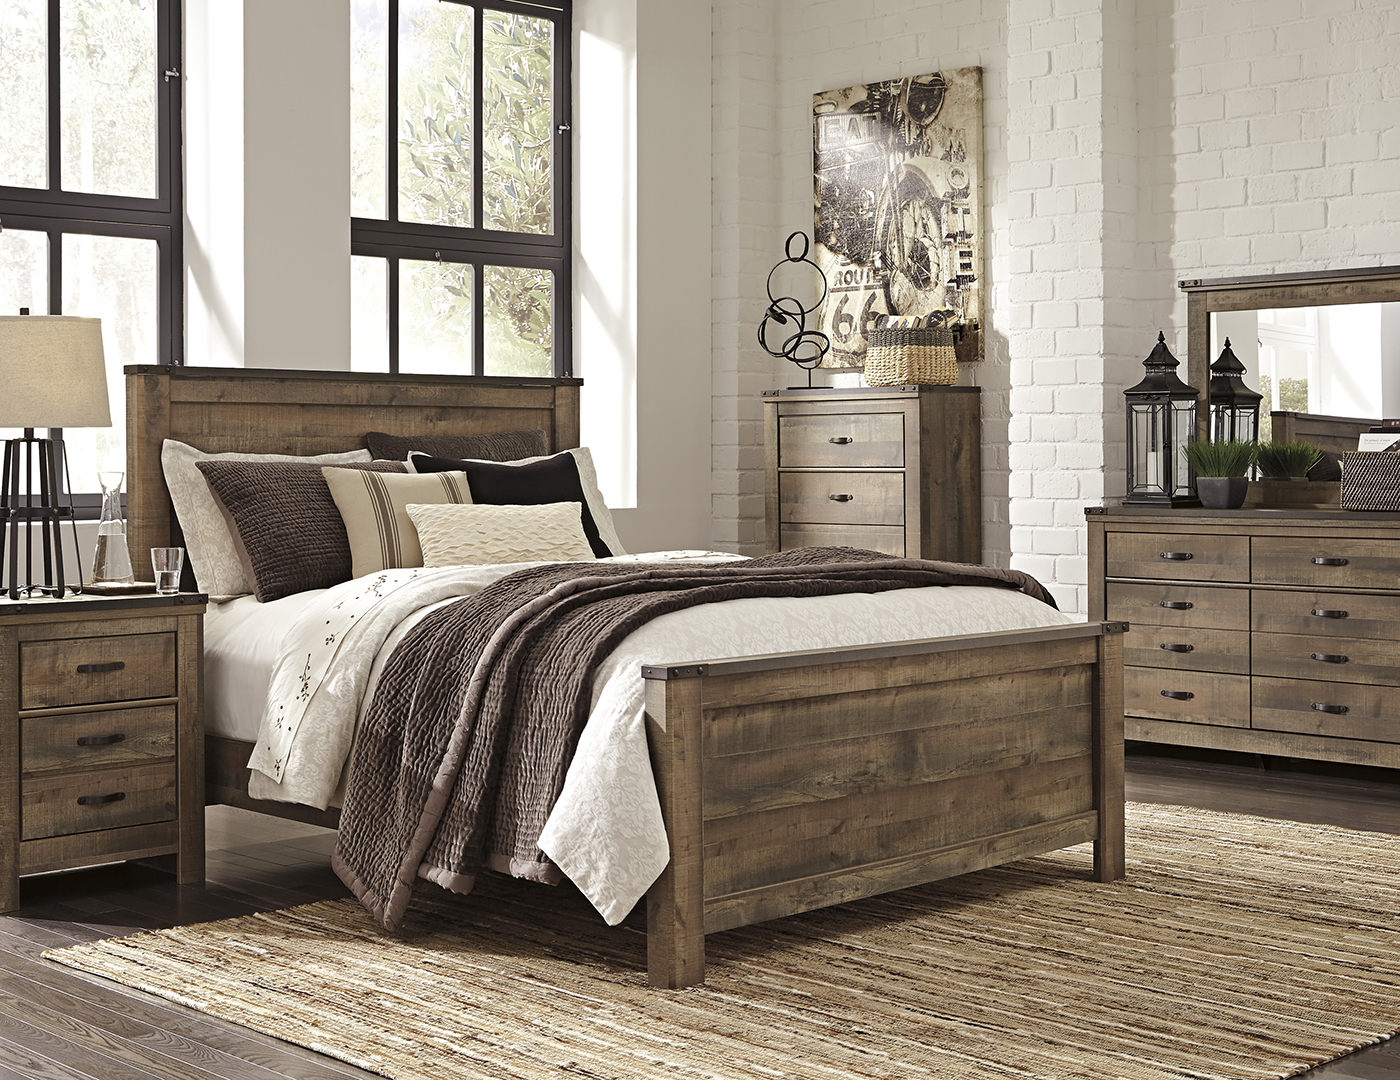 Trinell 5-pc. Queen Bedroom Set | Steinhafels